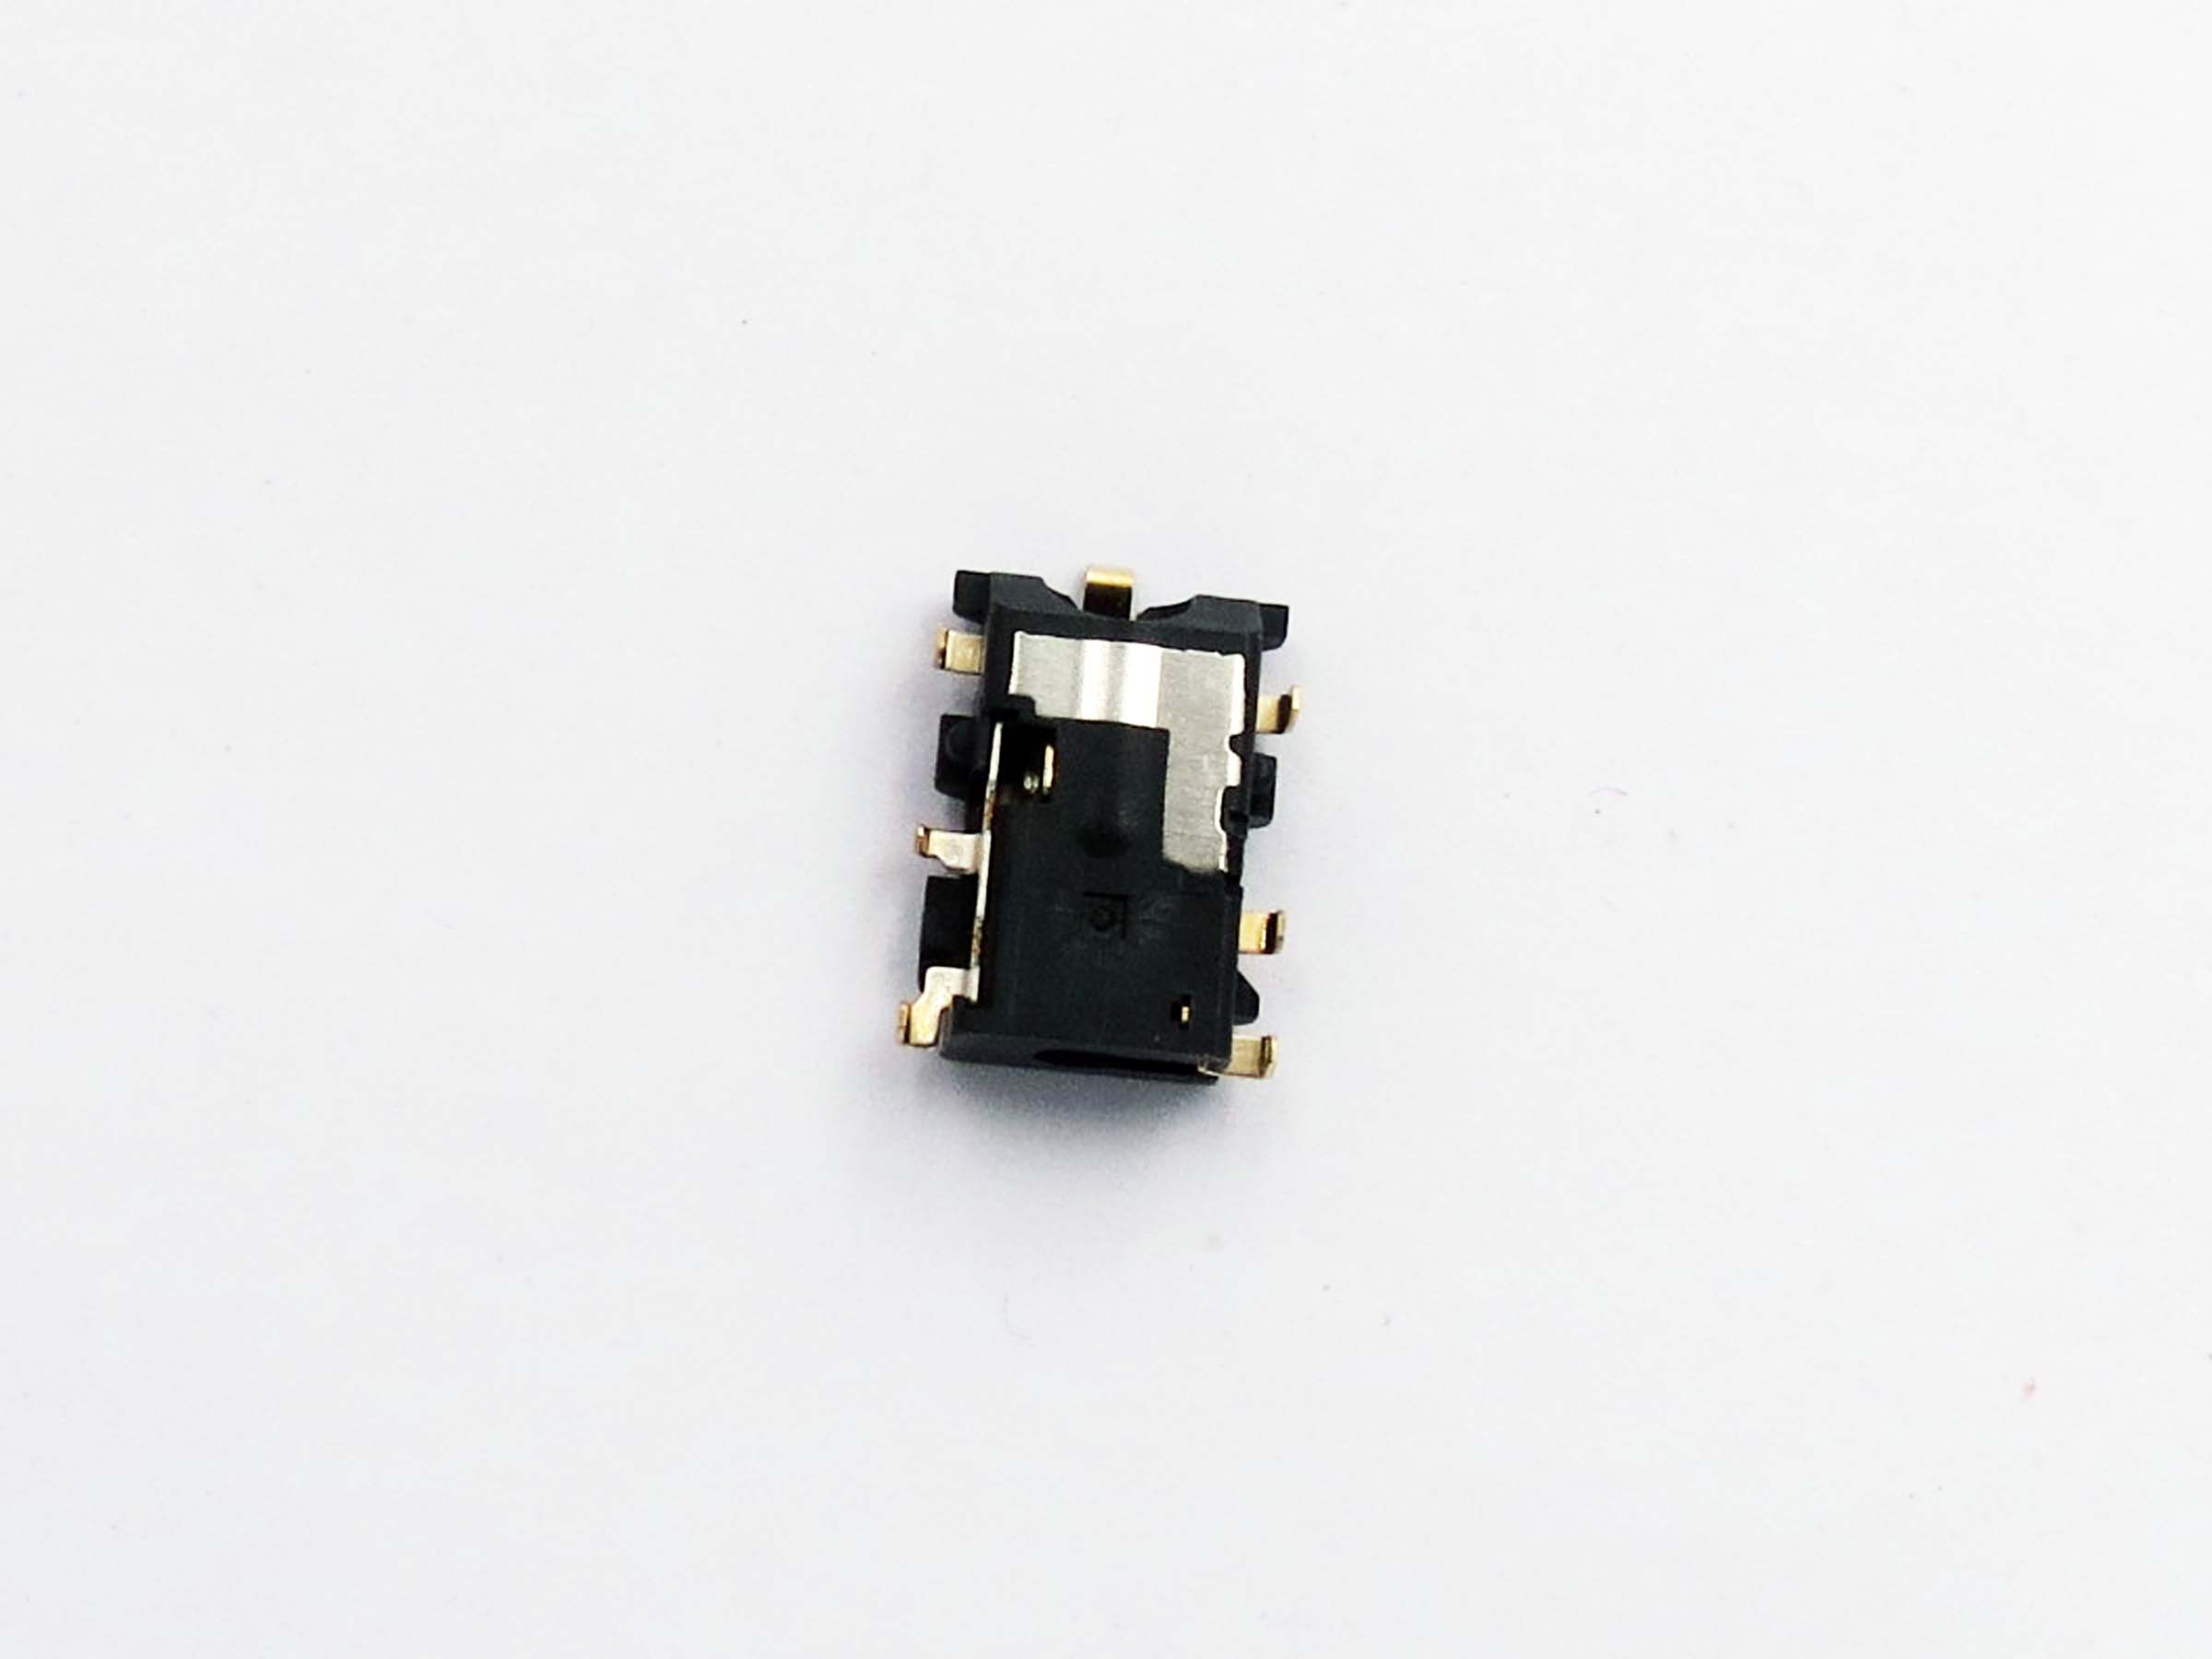 MTK version Earphone Headphone Jack Flex Cable for Xiaomi Redmi Note 4